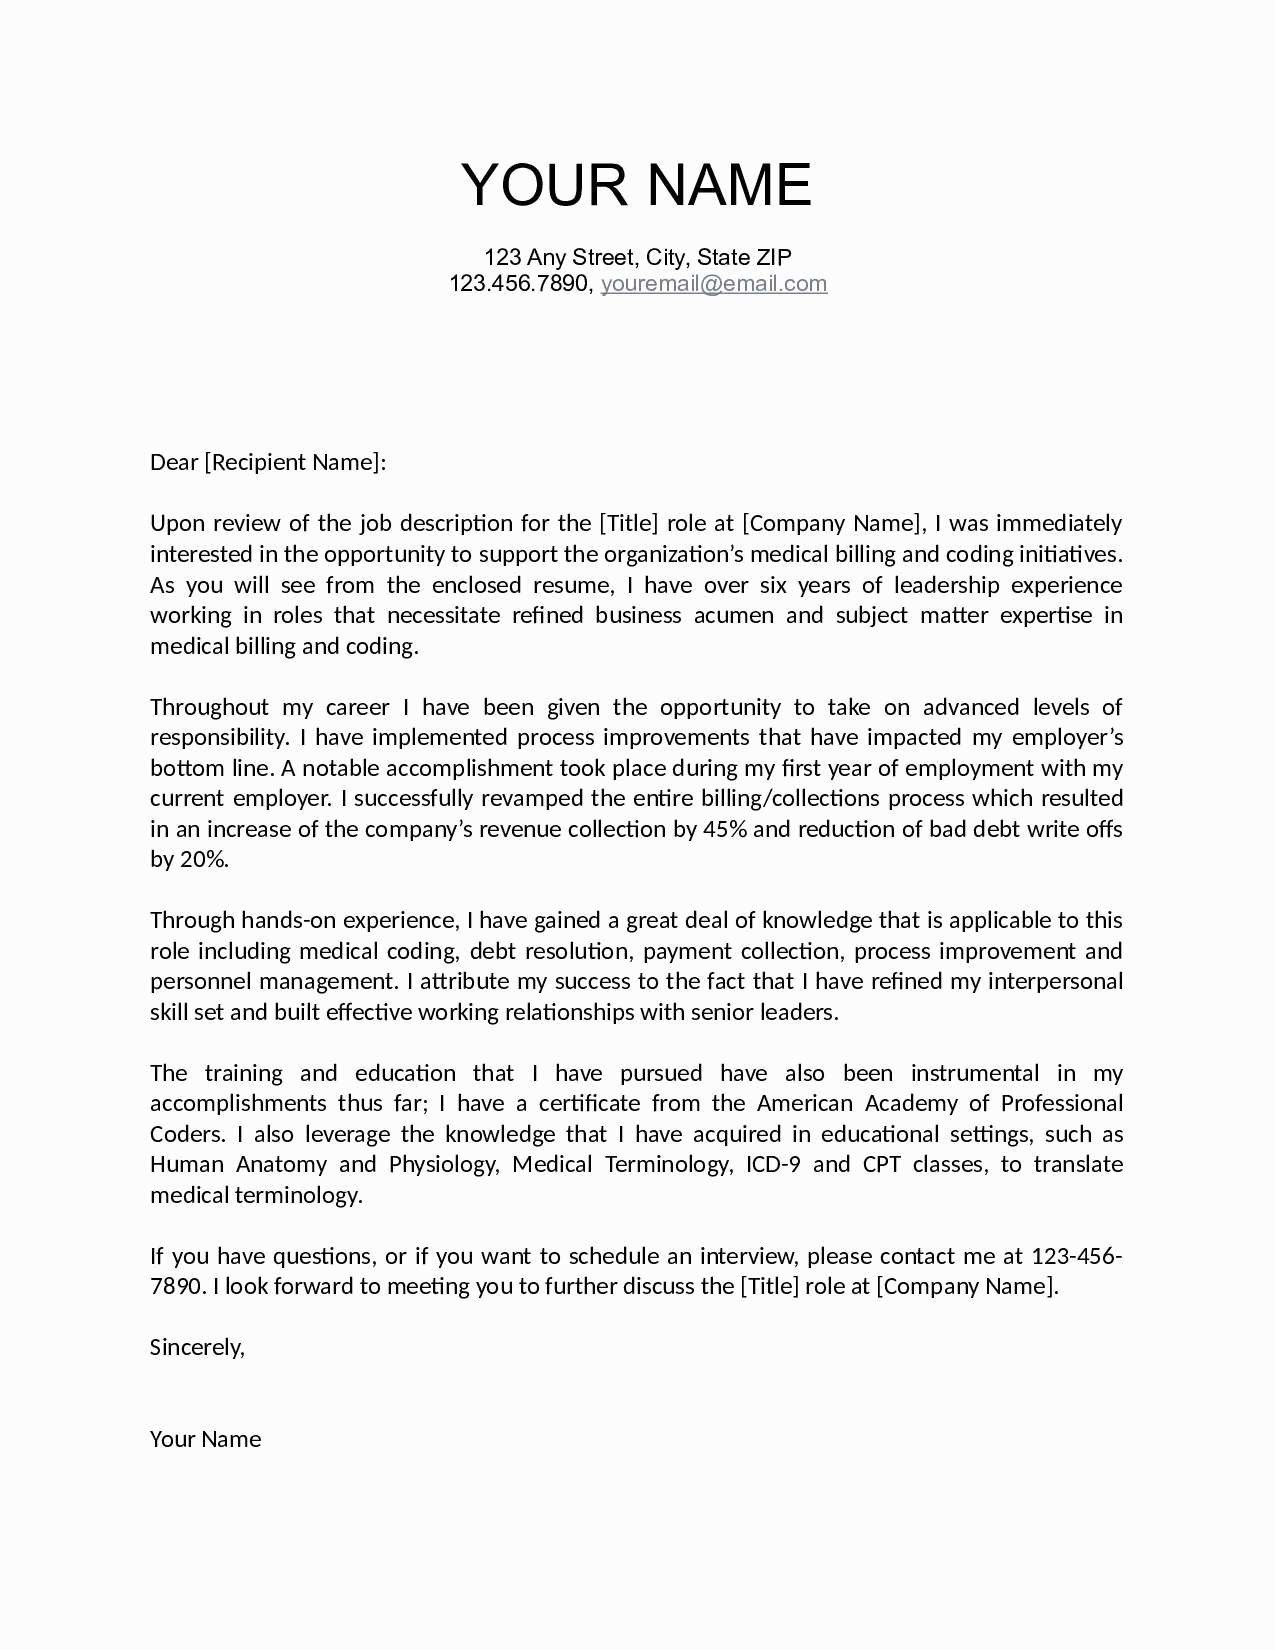 Sample of business resolution letter invisite corporate resolution letter template samples cover templates accmission Image collections